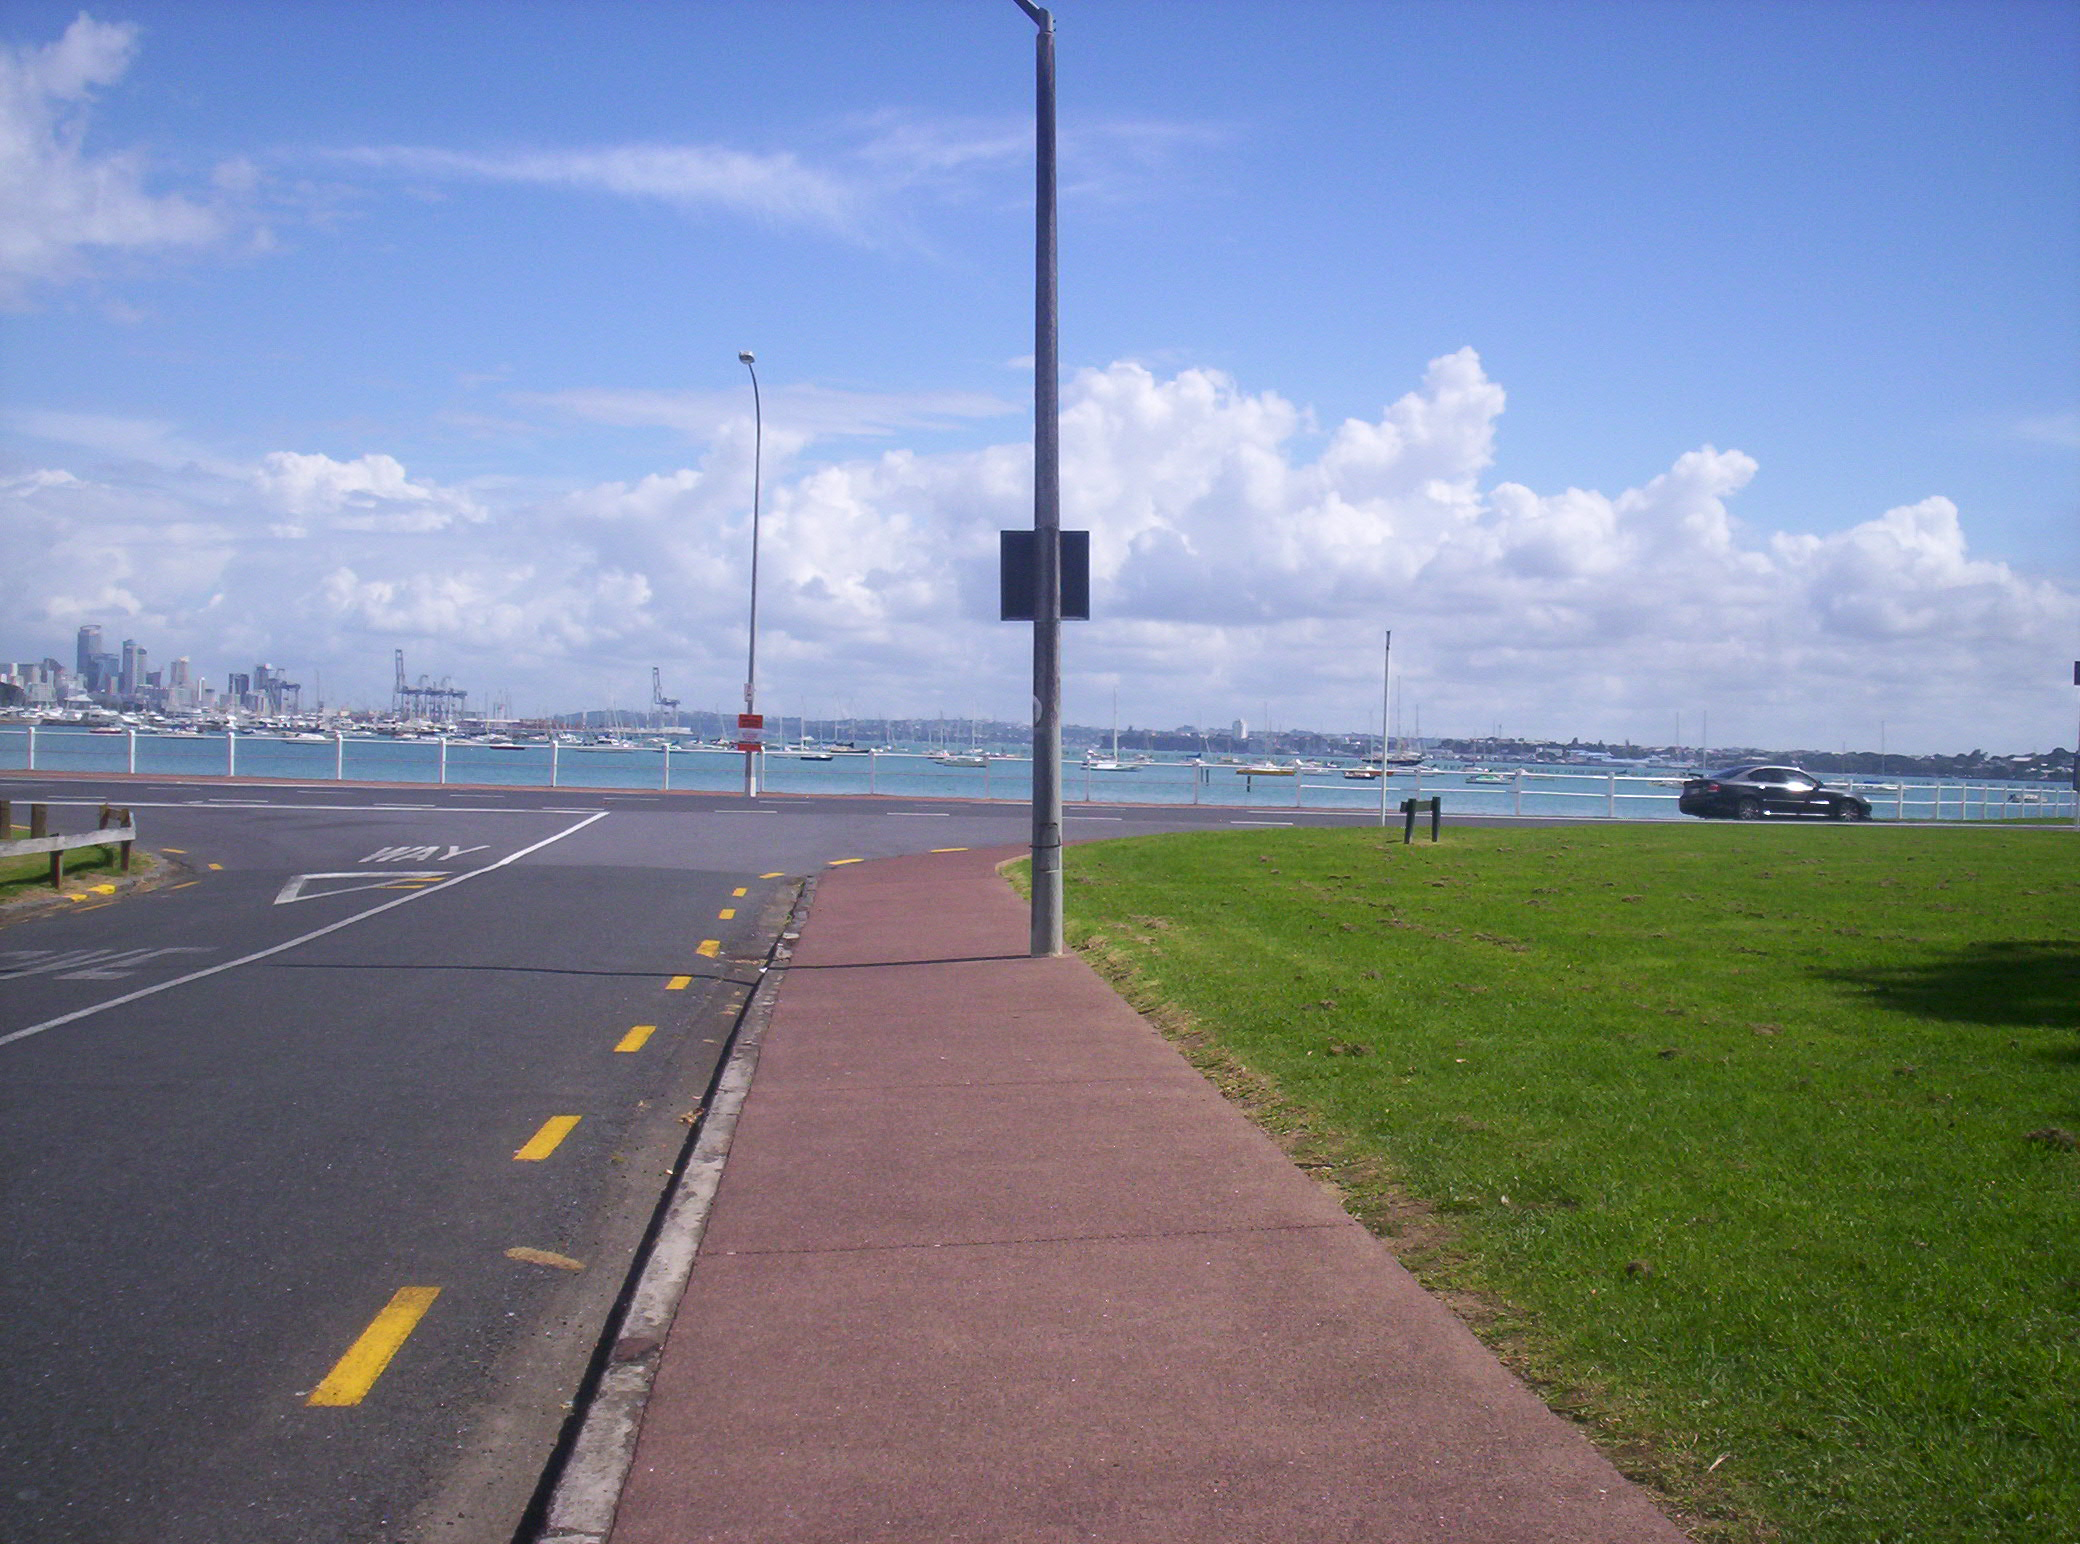 Tamaki drive - auckland water front photo